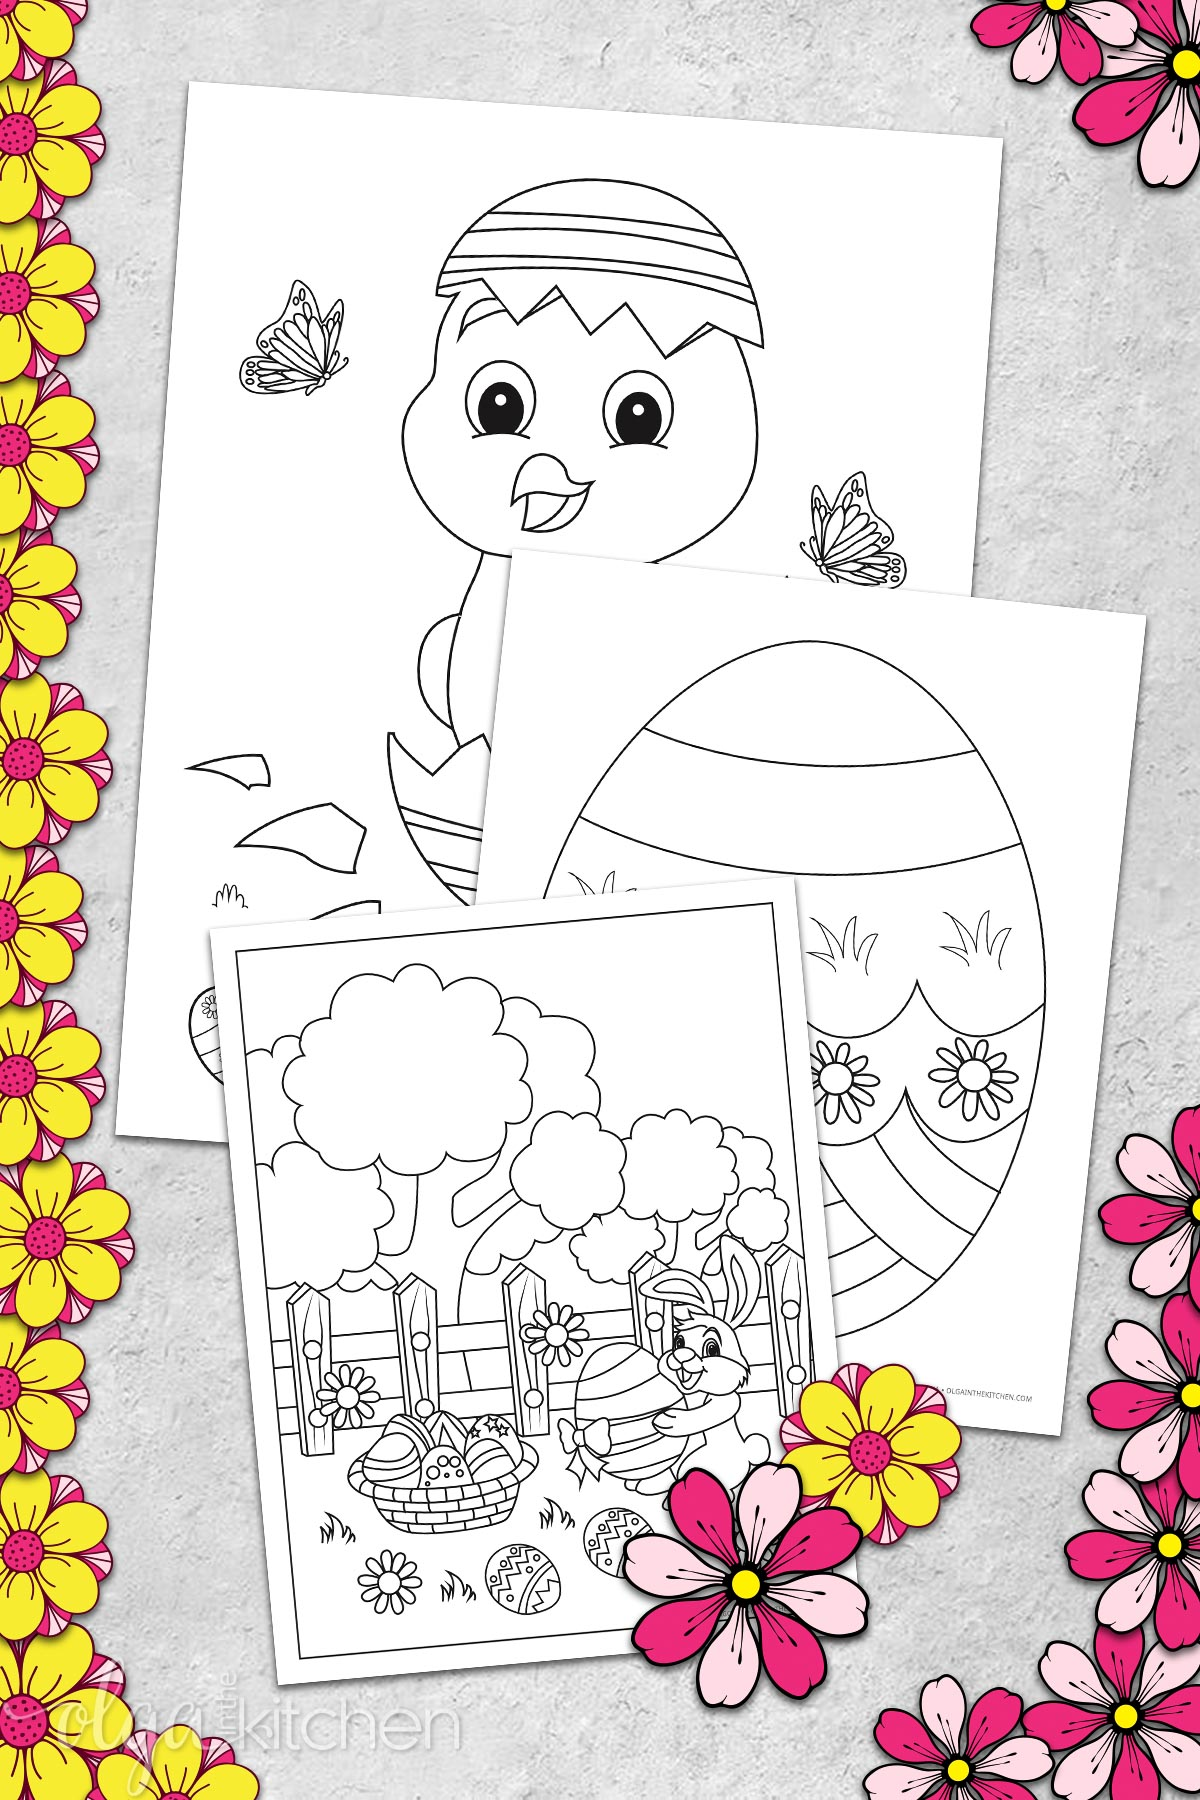 Using Easter coloring pages as crafts for kids.